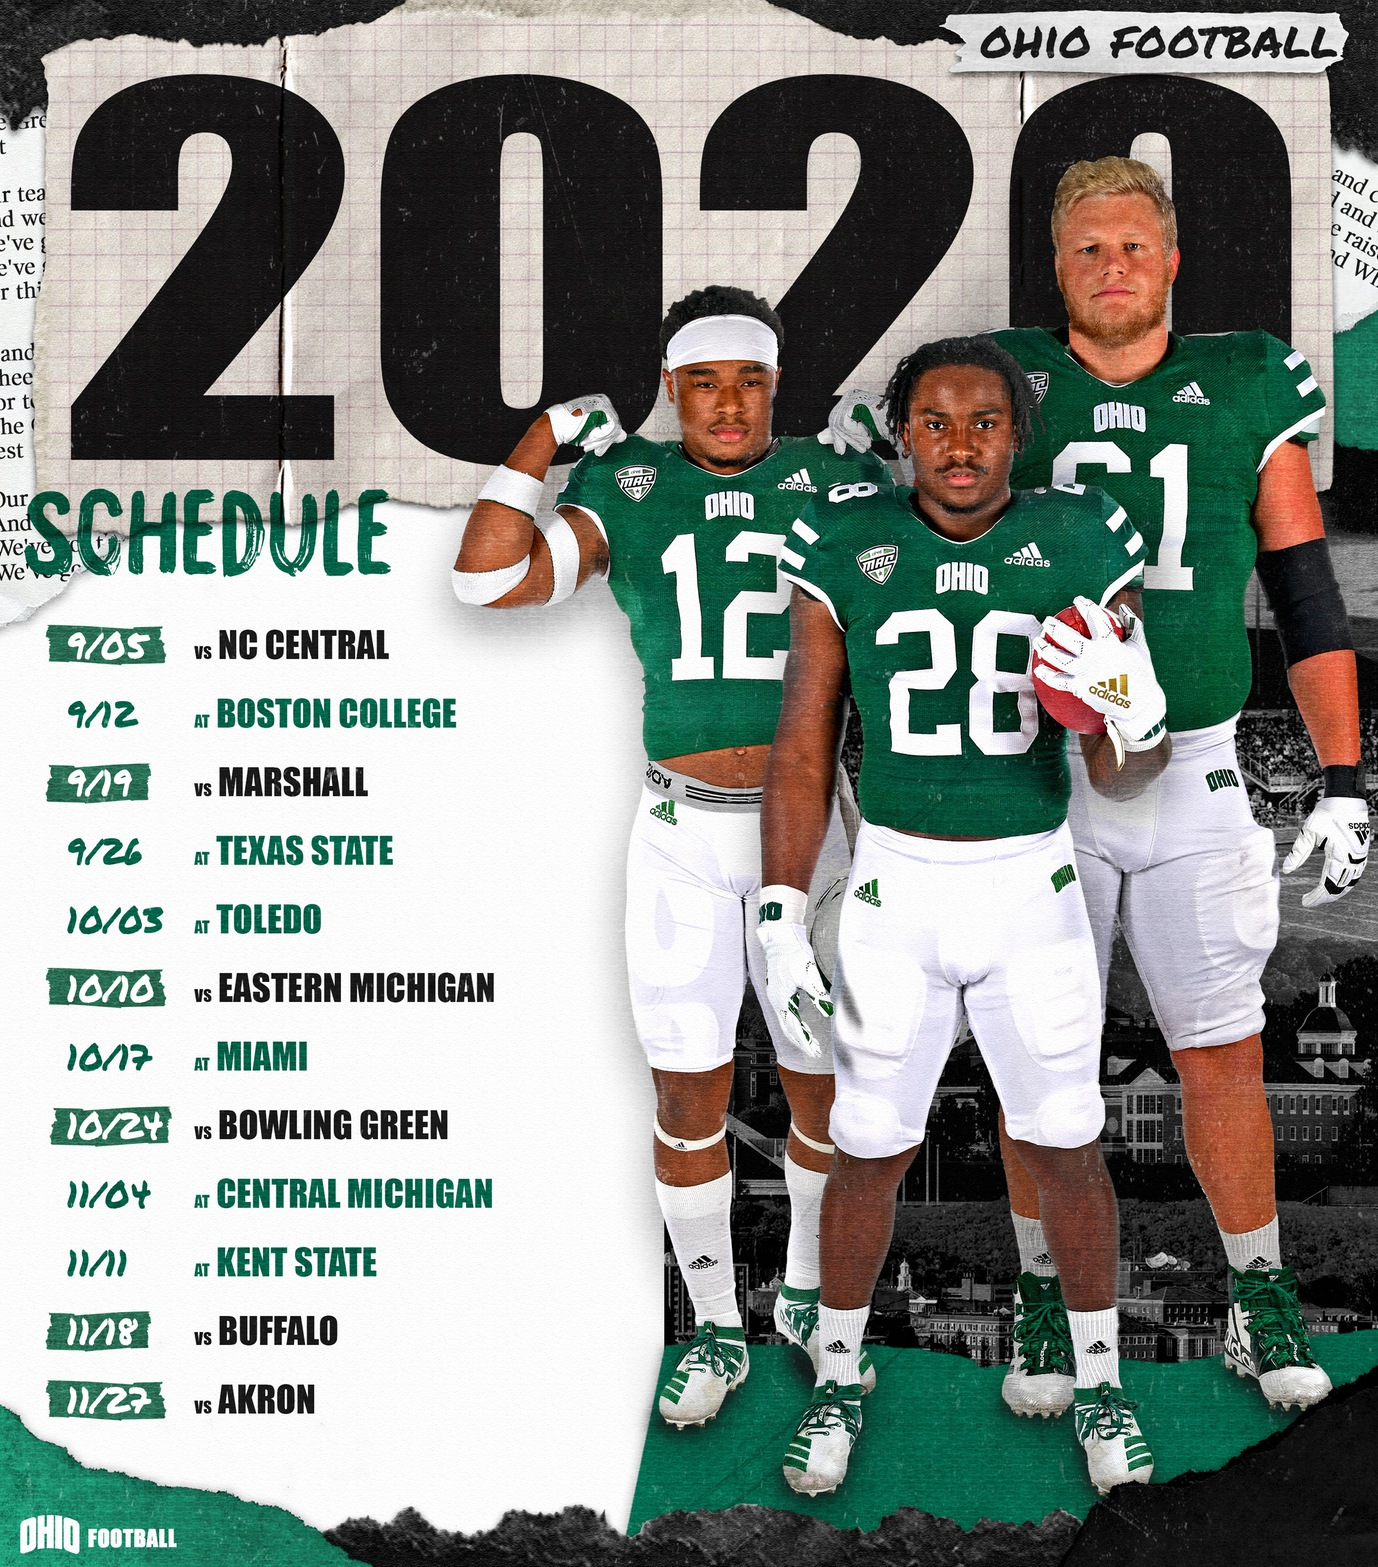 Ohio Football Releases 2020 Schedule